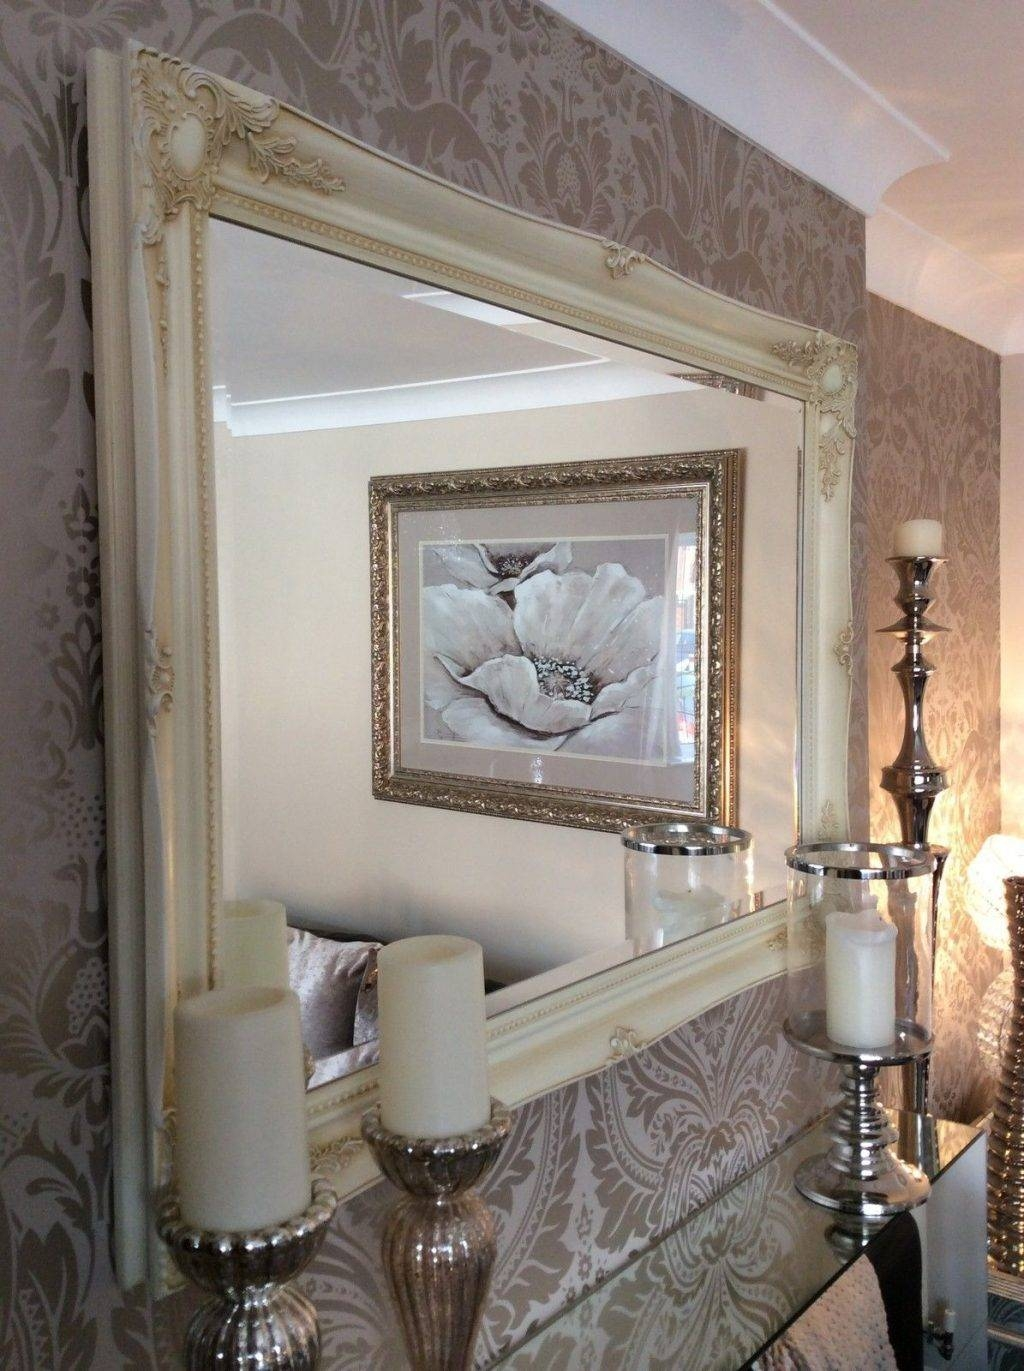 Shabby Chic Wall Mirror 73 Trendy Interior Or Fabulous Large Cream regarding Shabby Chic Large Wall Mirrors (Image 24 of 25)